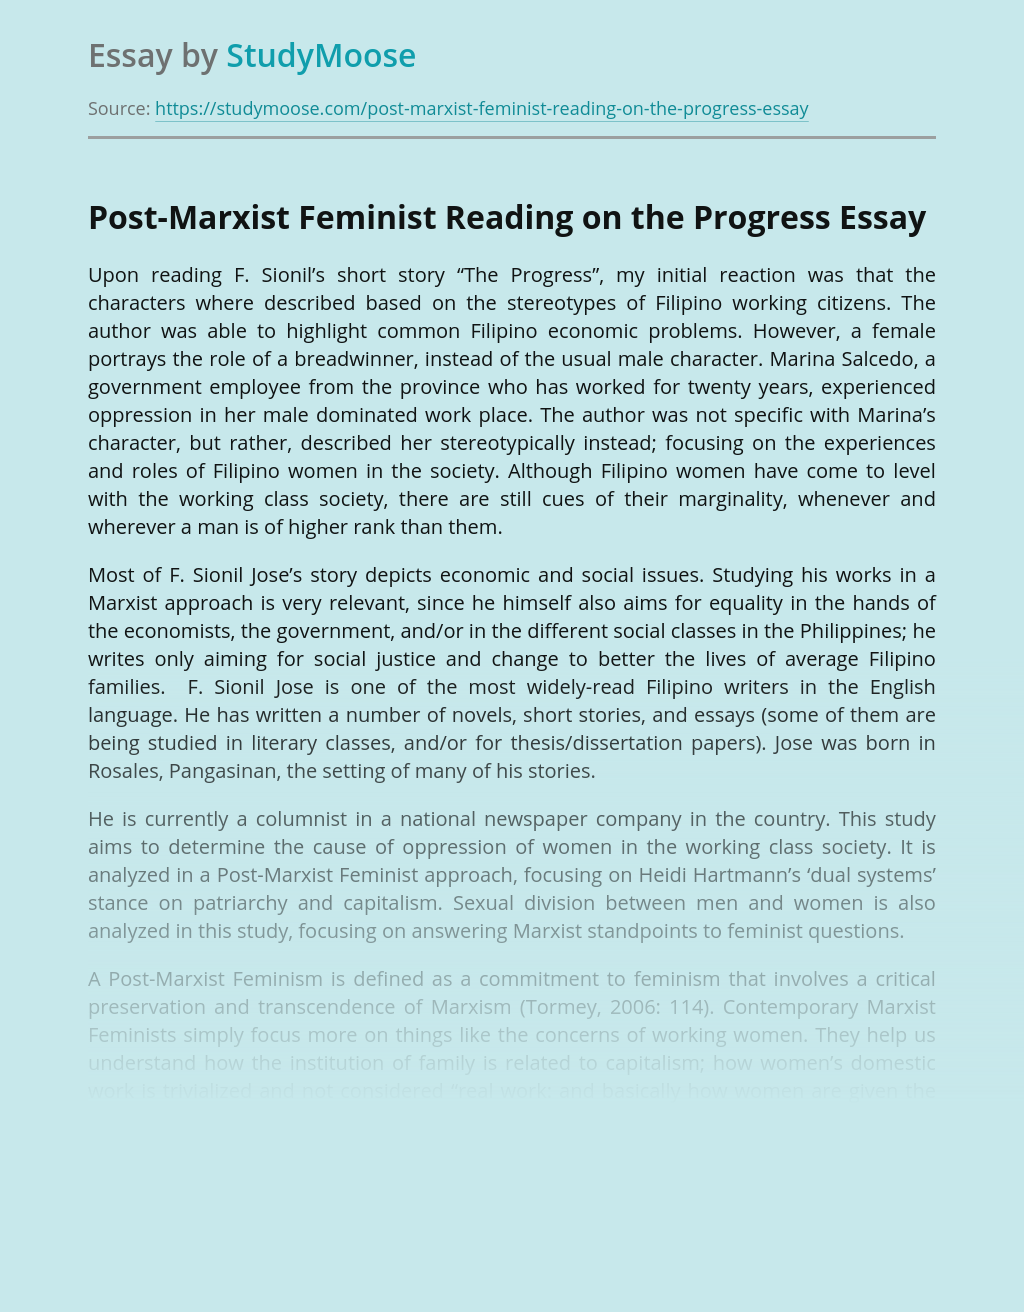 Post-Marxist Feminist Reading on the Progress